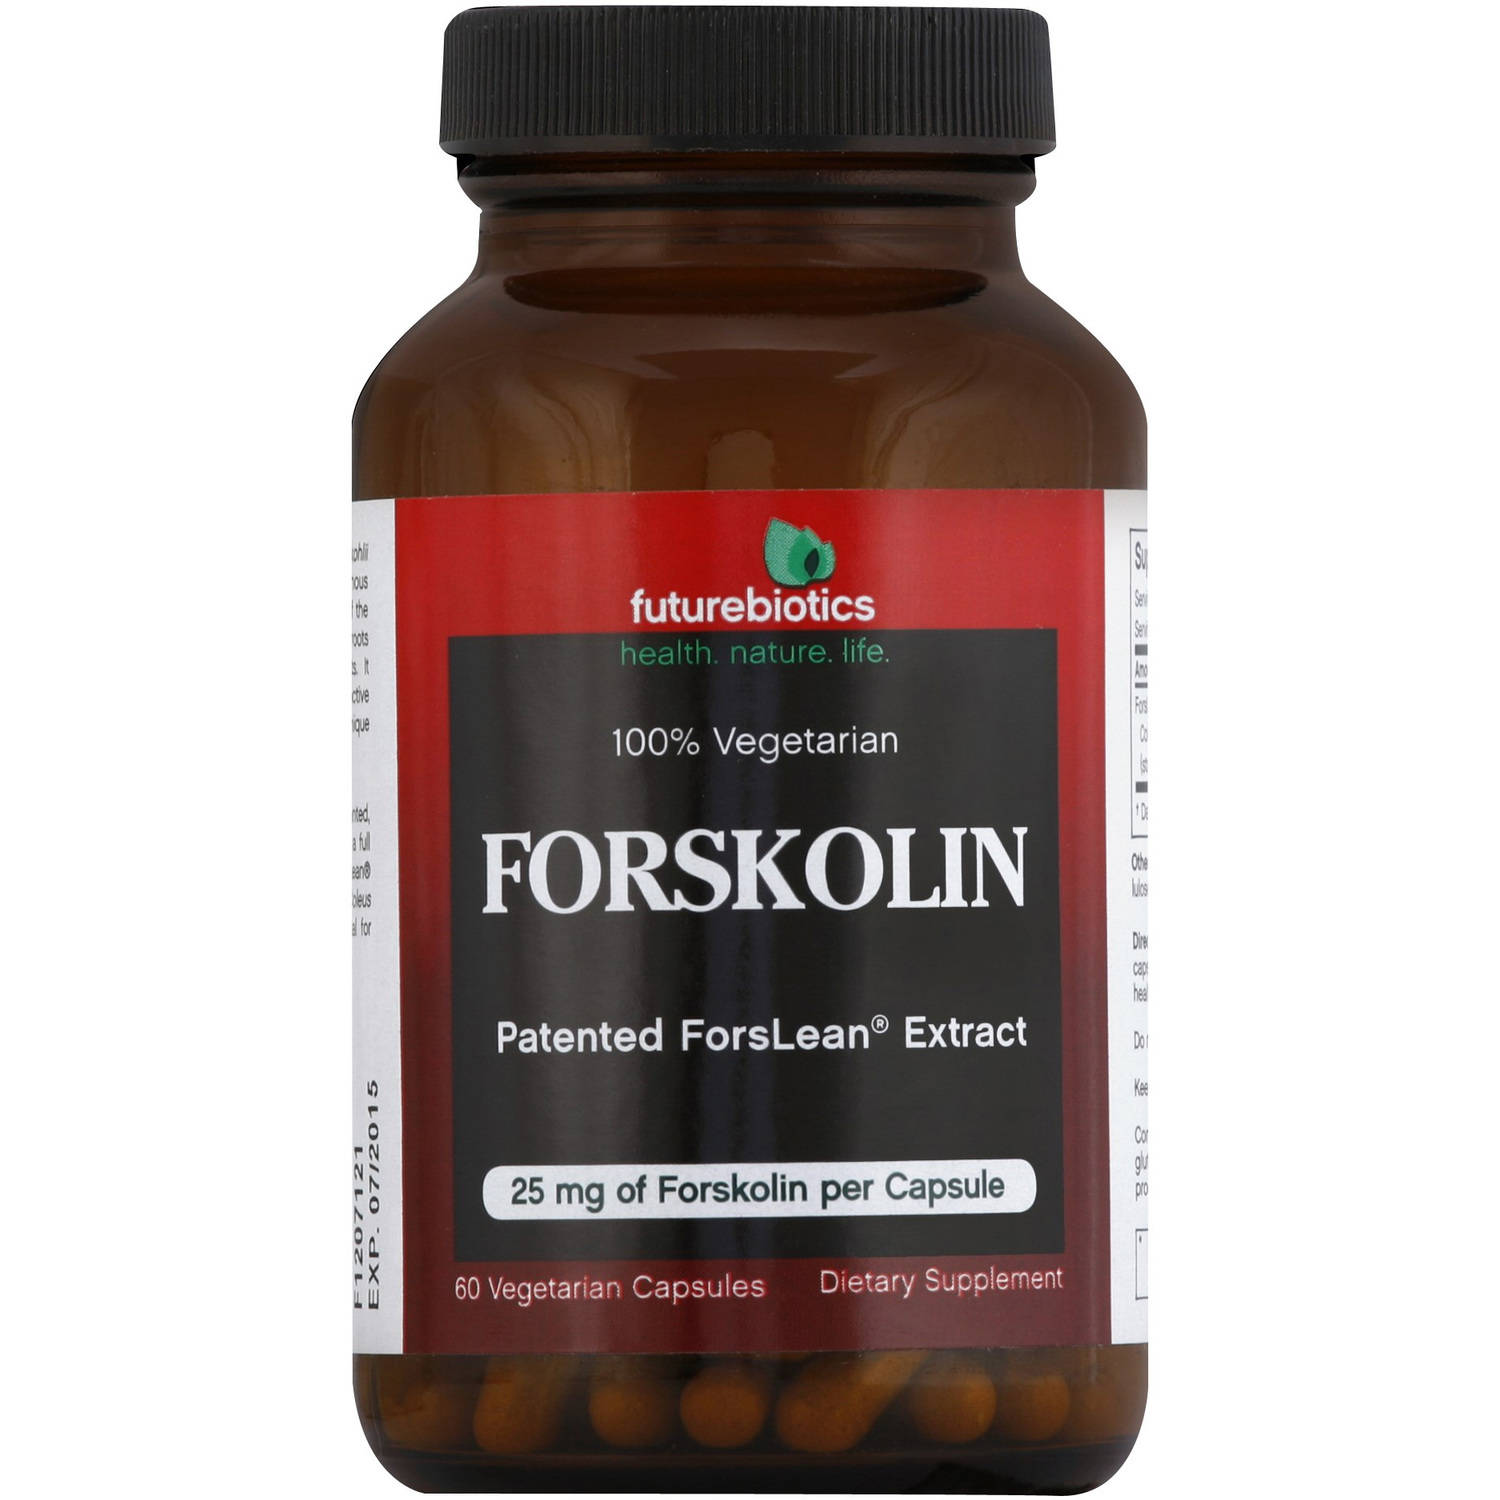 Futurebiotics Forskolin Vegetarian Capsules, 60 CT